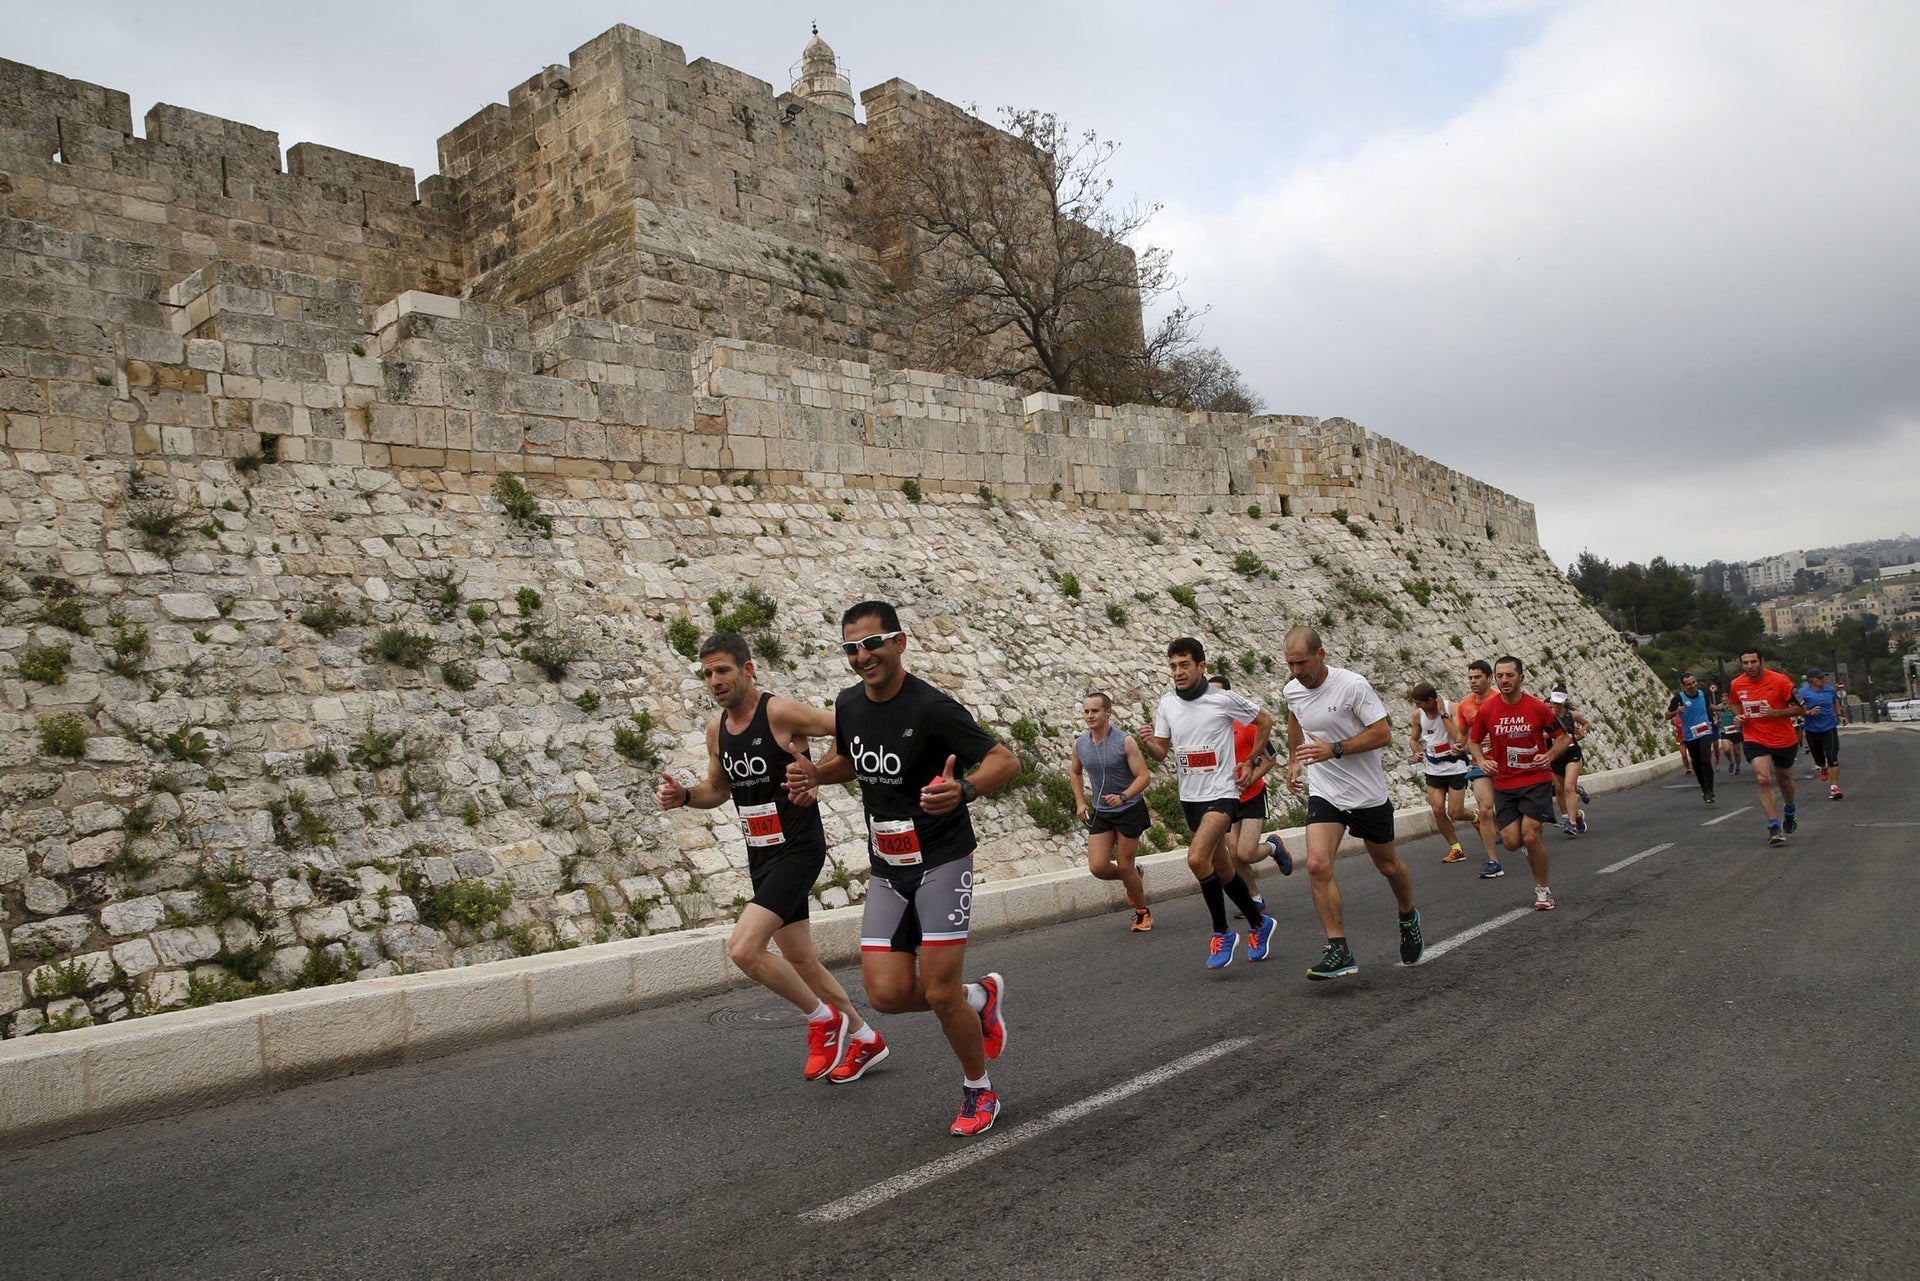 Athletes run outside Jerusalem's Old City as they participate in the sixth international Jerusalem Marathon. March 18, 2016.